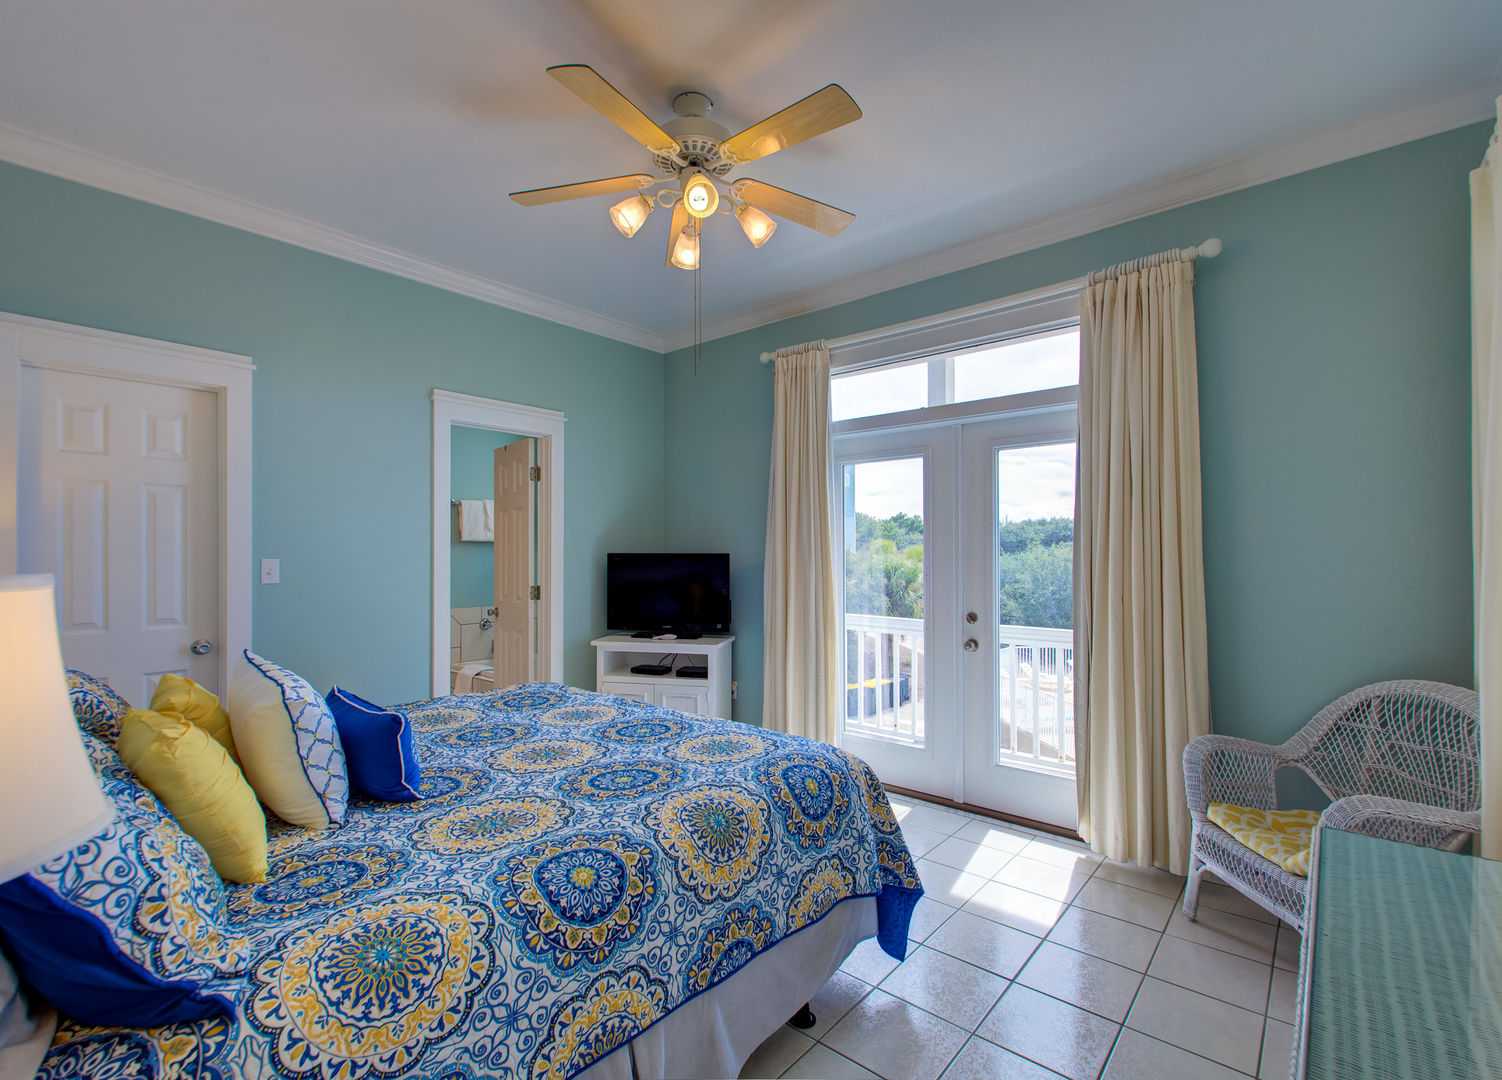 Large Bed, Patio Doors to the Balcony, TV, and Ceiling Fan.